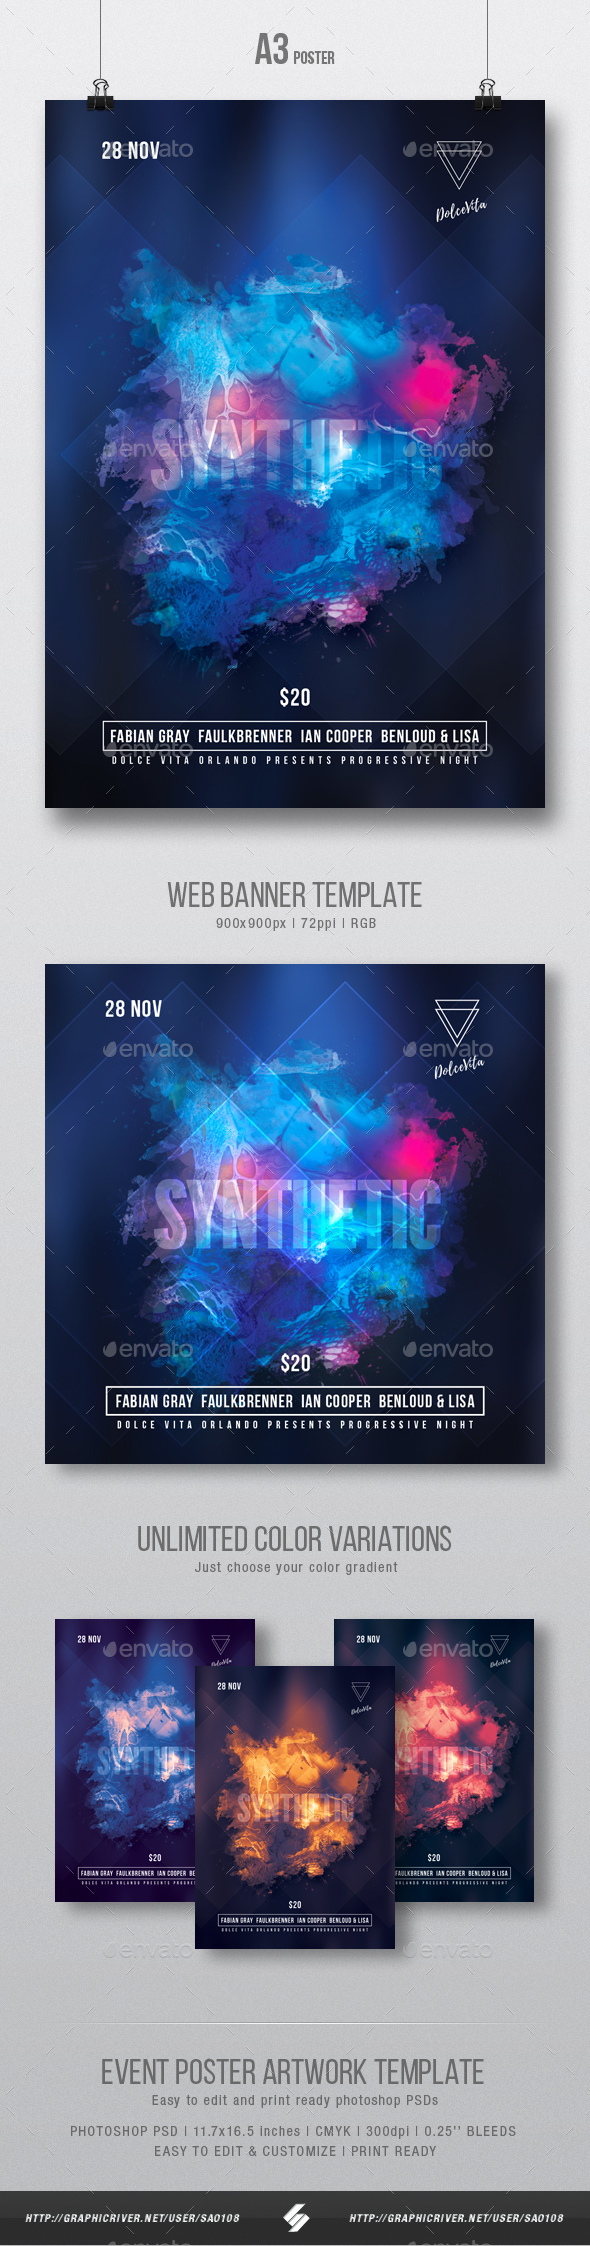 Synthetic - Abstract Glowing Party Flyer / Poster Template A3 - Clubs & Parties Events